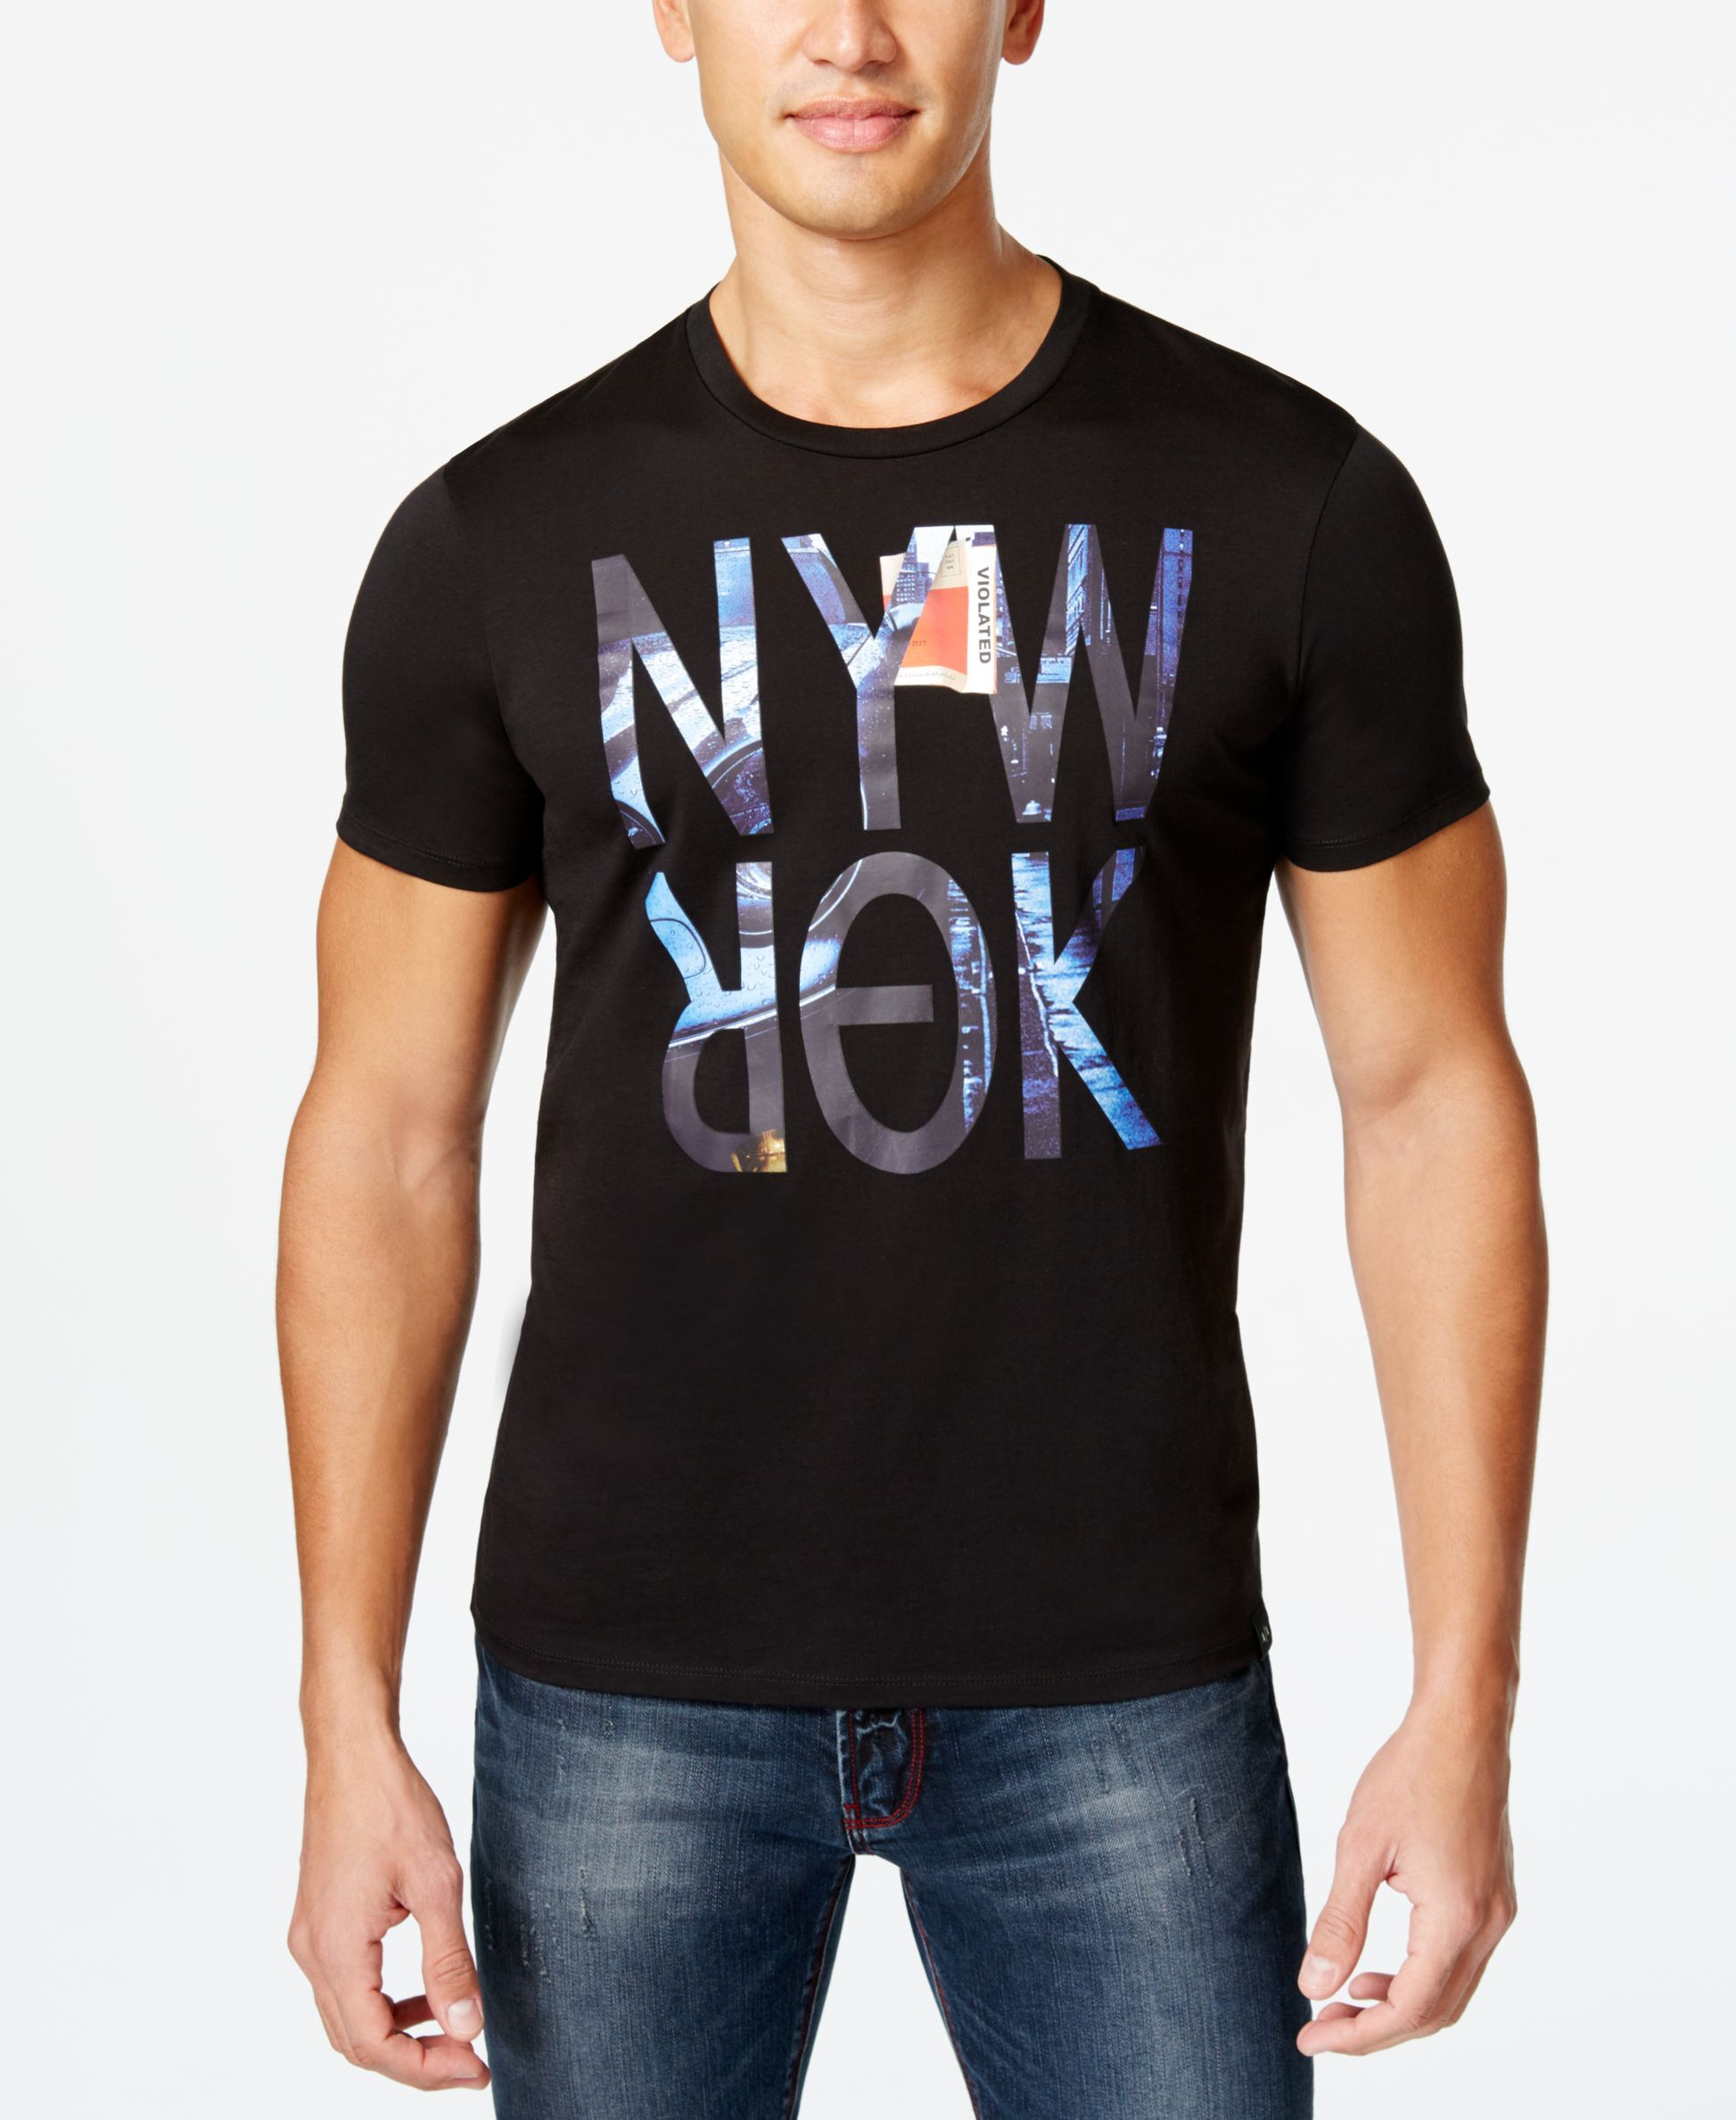 ab64f9034e4 Armani Exchange Men s Ny City Graphic-Print T-Shirt